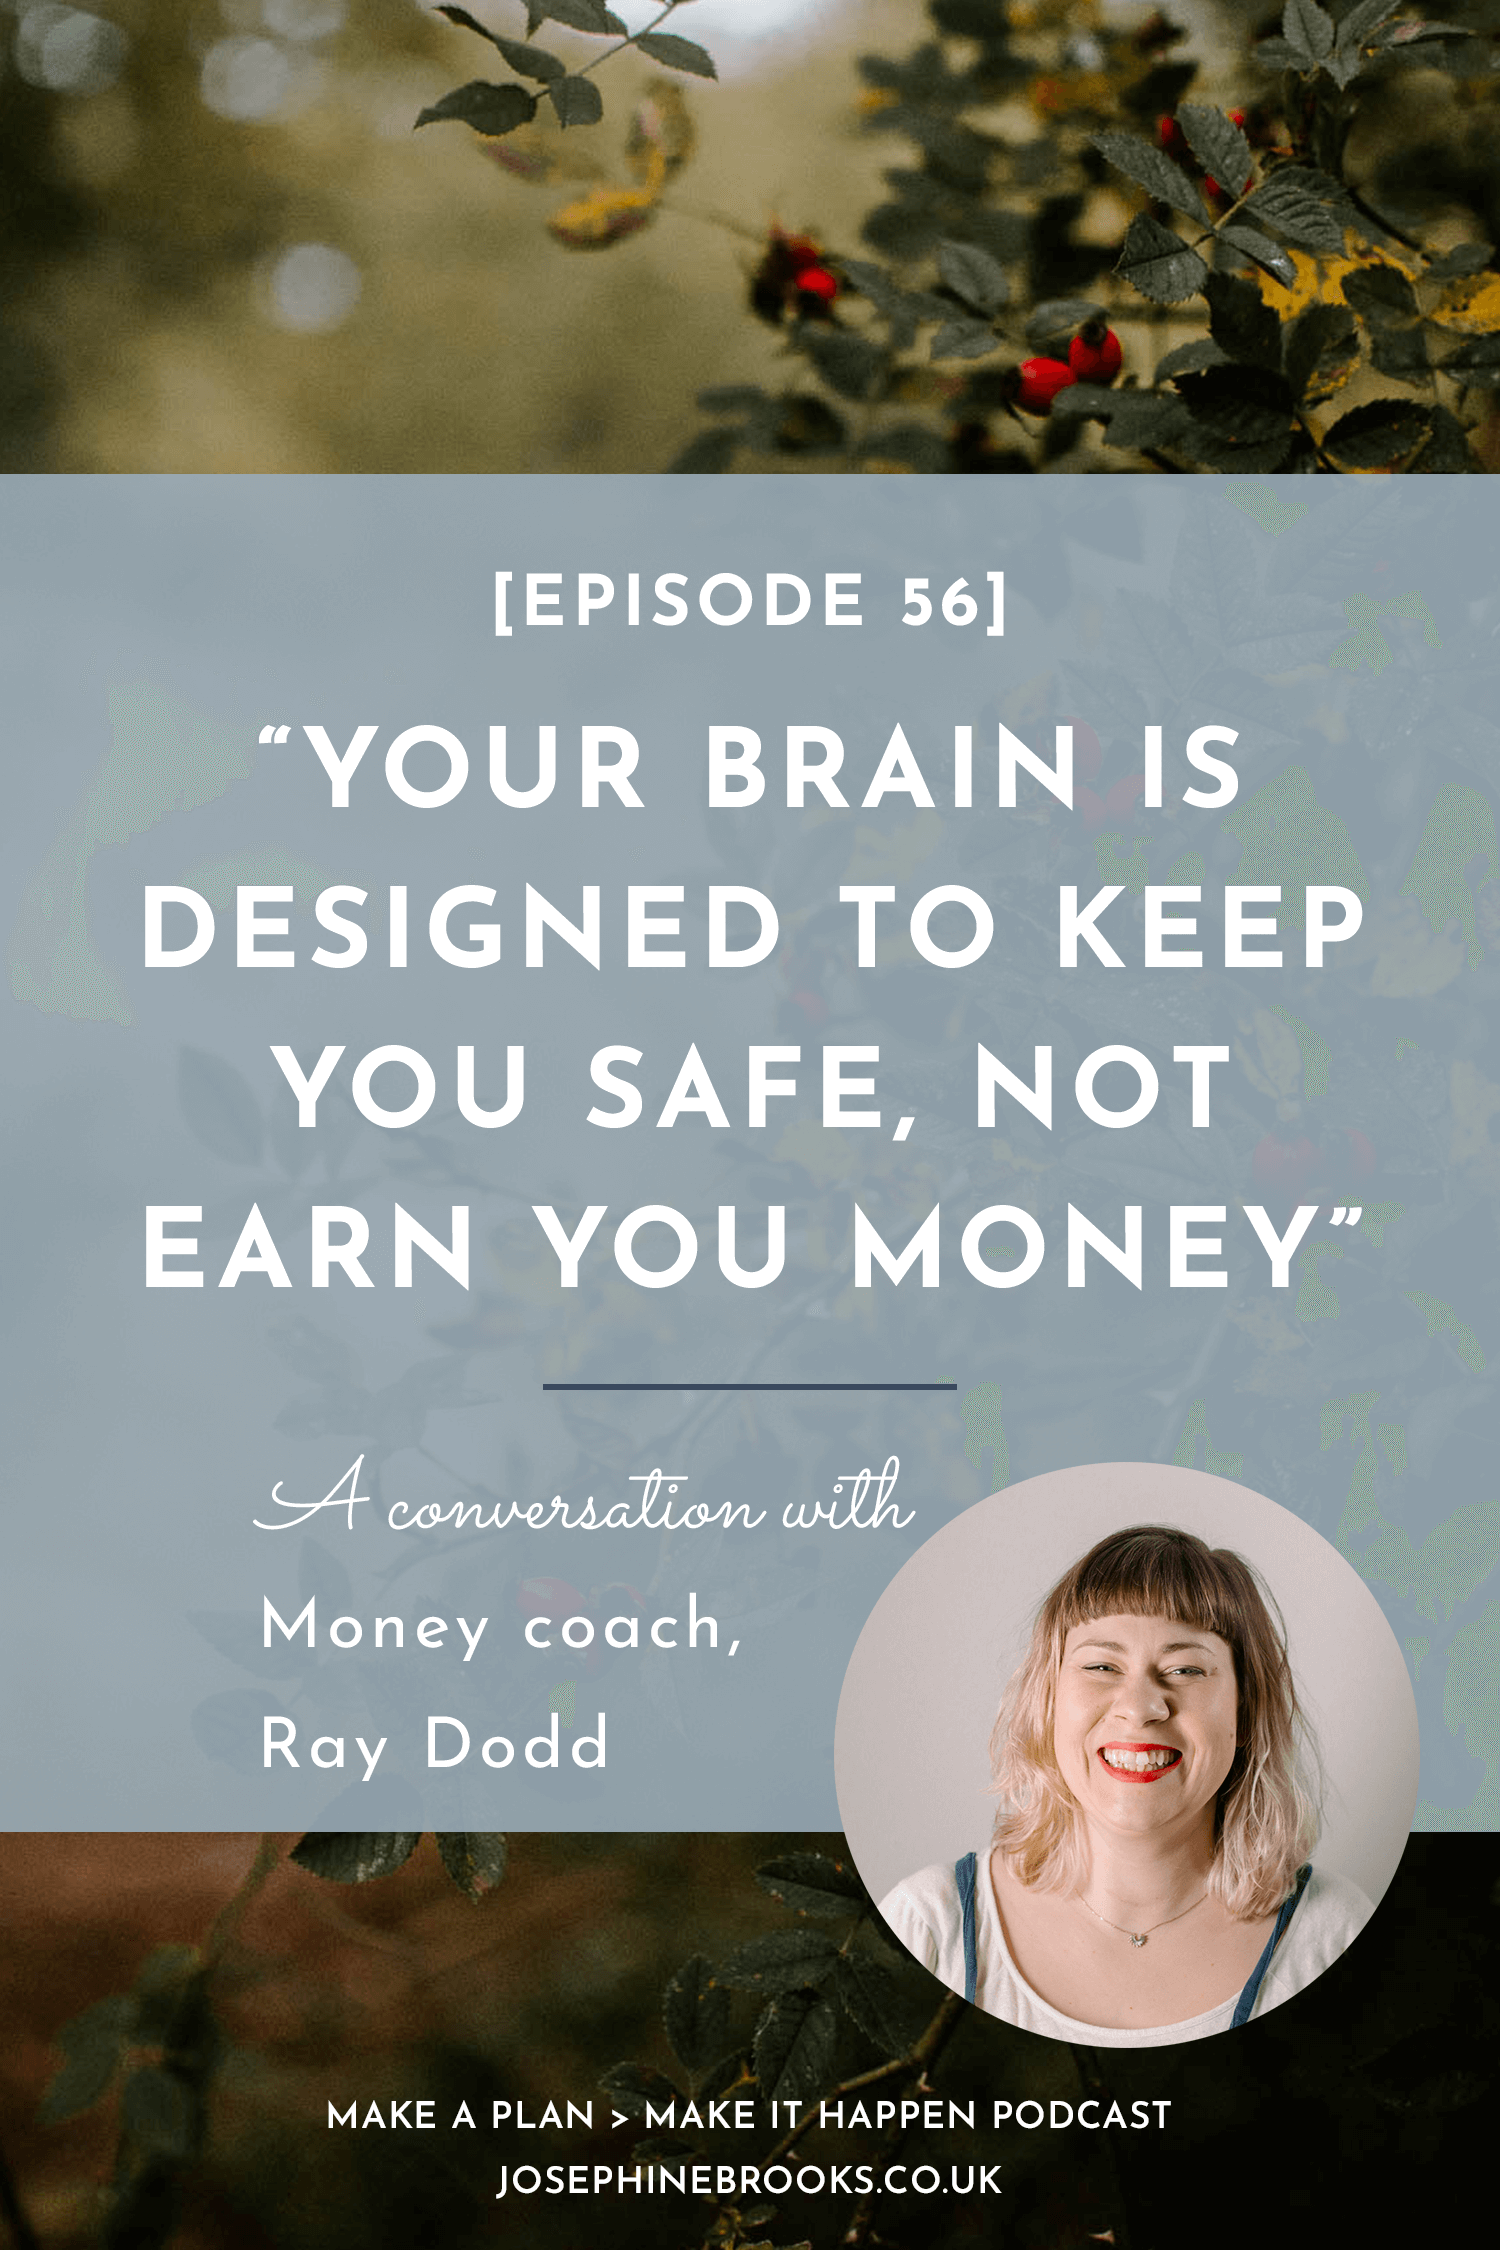 Your brain is designed to keep you safe, not earn you money - a conversation with money coach, Ray Dodd for Make a Plan, Make it Happen podcast